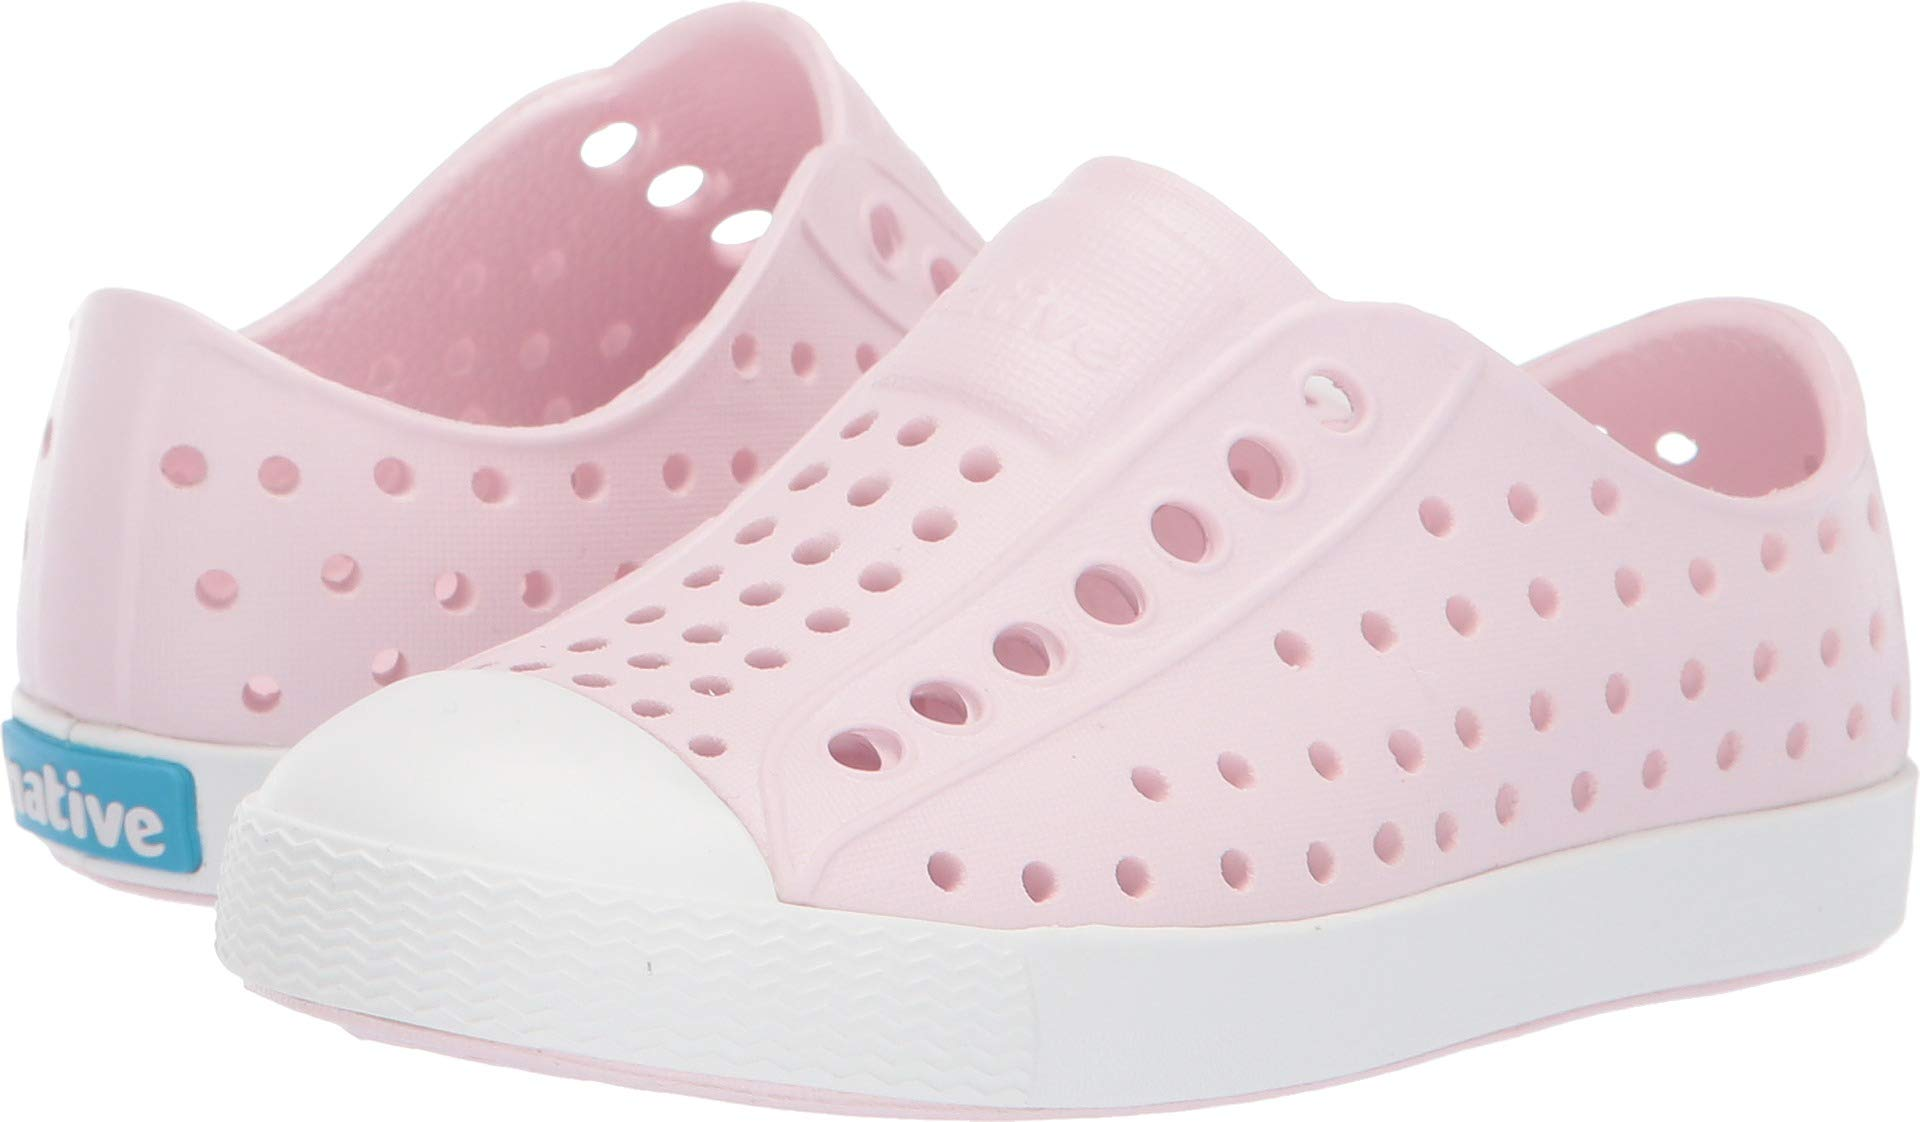 Native Shoes Girls' Jefferson Child Sneaker Milk Pink/Shell White 4 M US Toddler